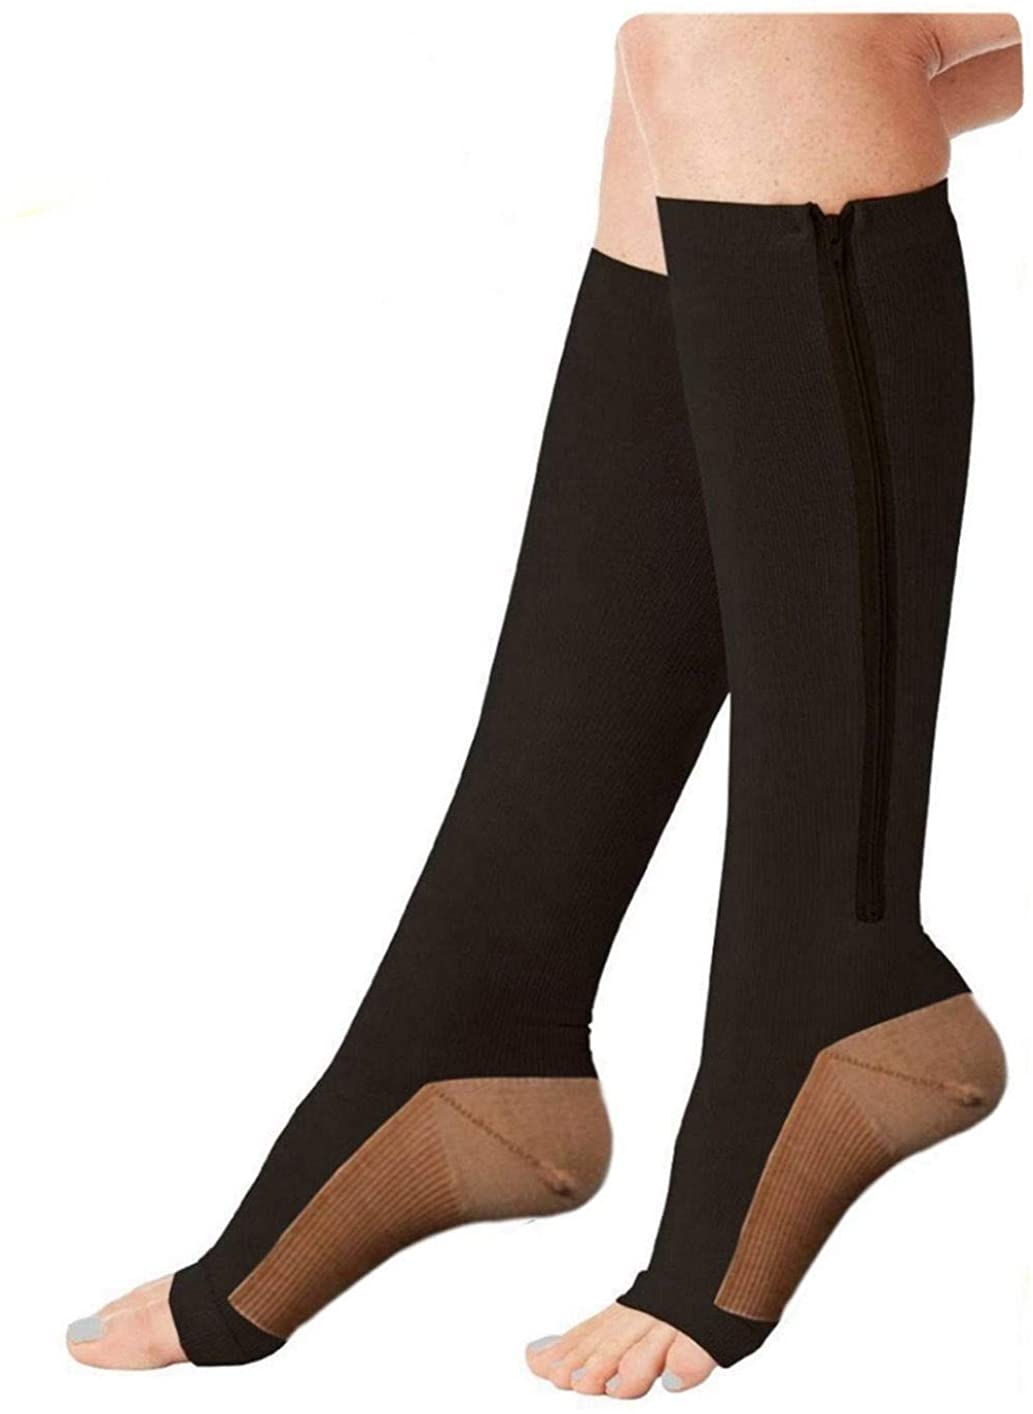 TASOM Zip Compression Socks (1 Pair) Sports Medical Recovery Support Open Toe Zipper Zippered Stockings